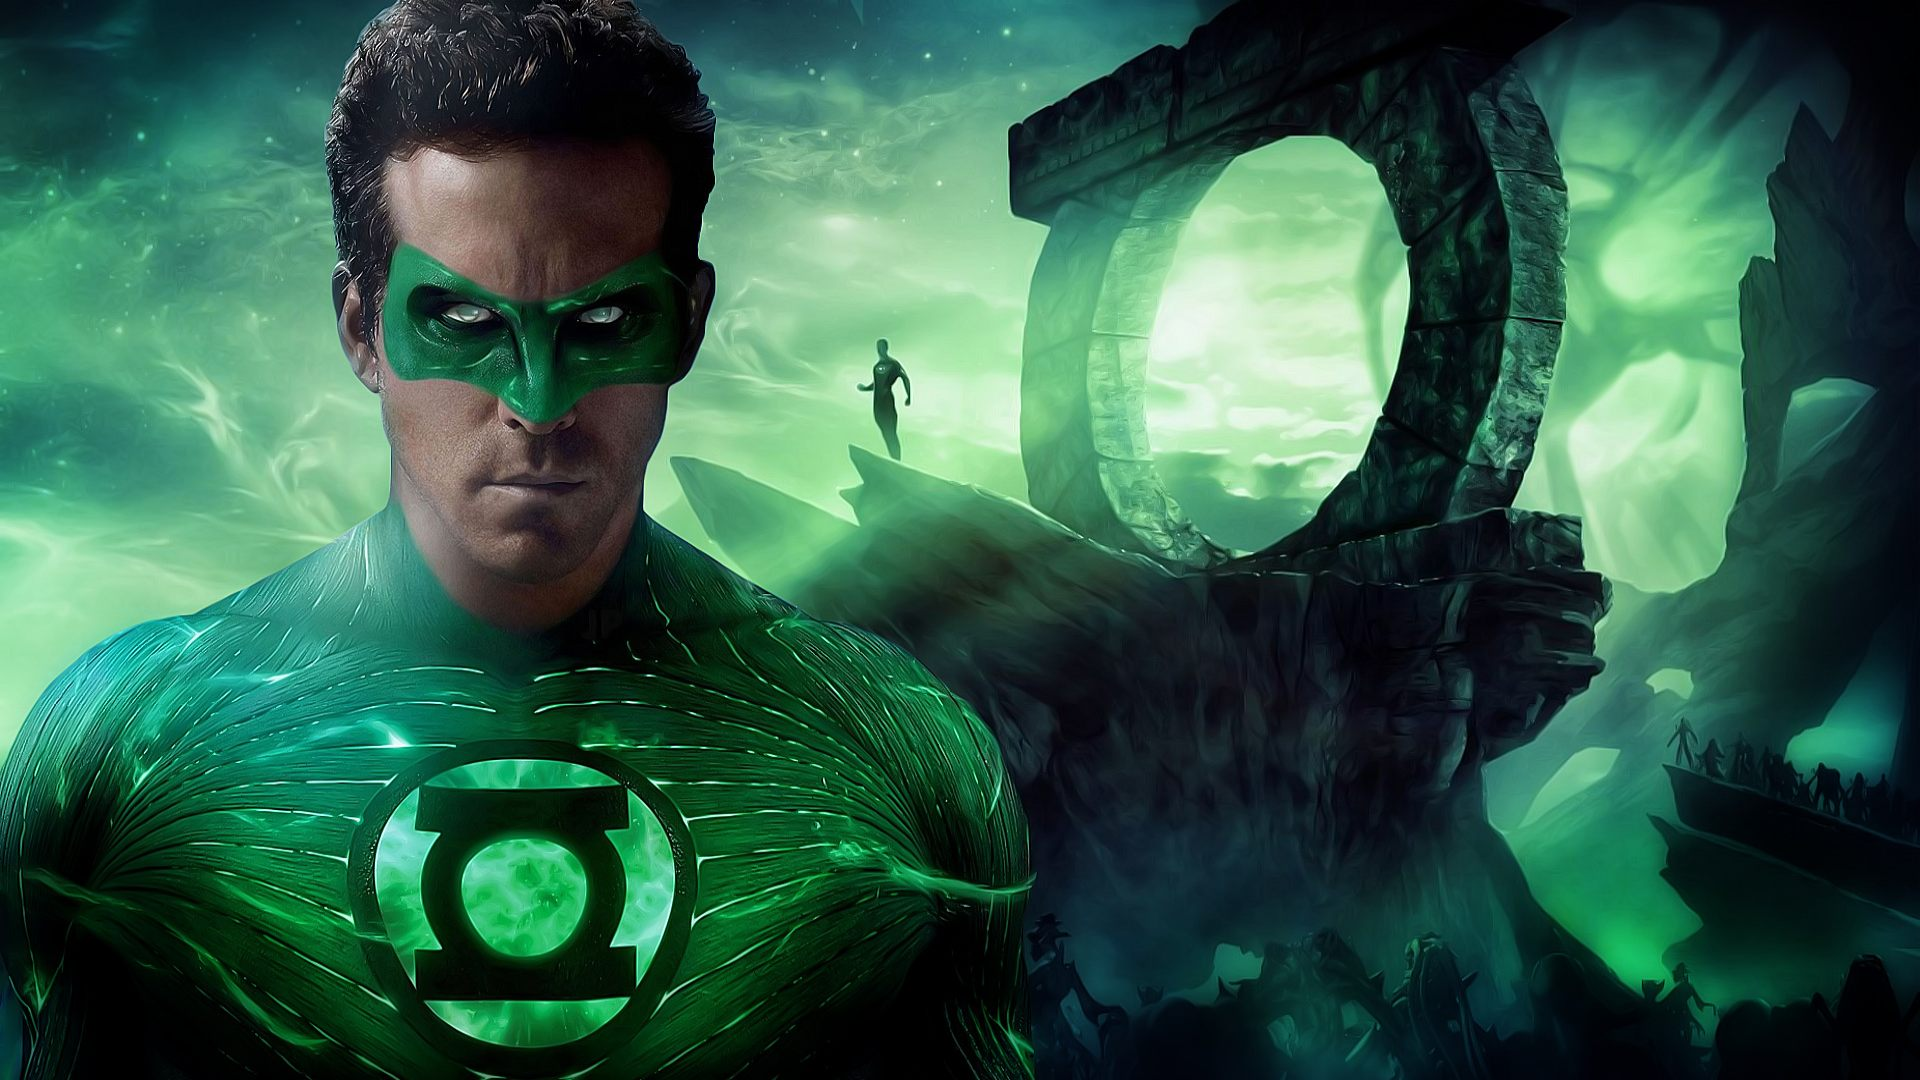 green lantern hal jordan ryan reynolds dc comics super hero hd wallpaper